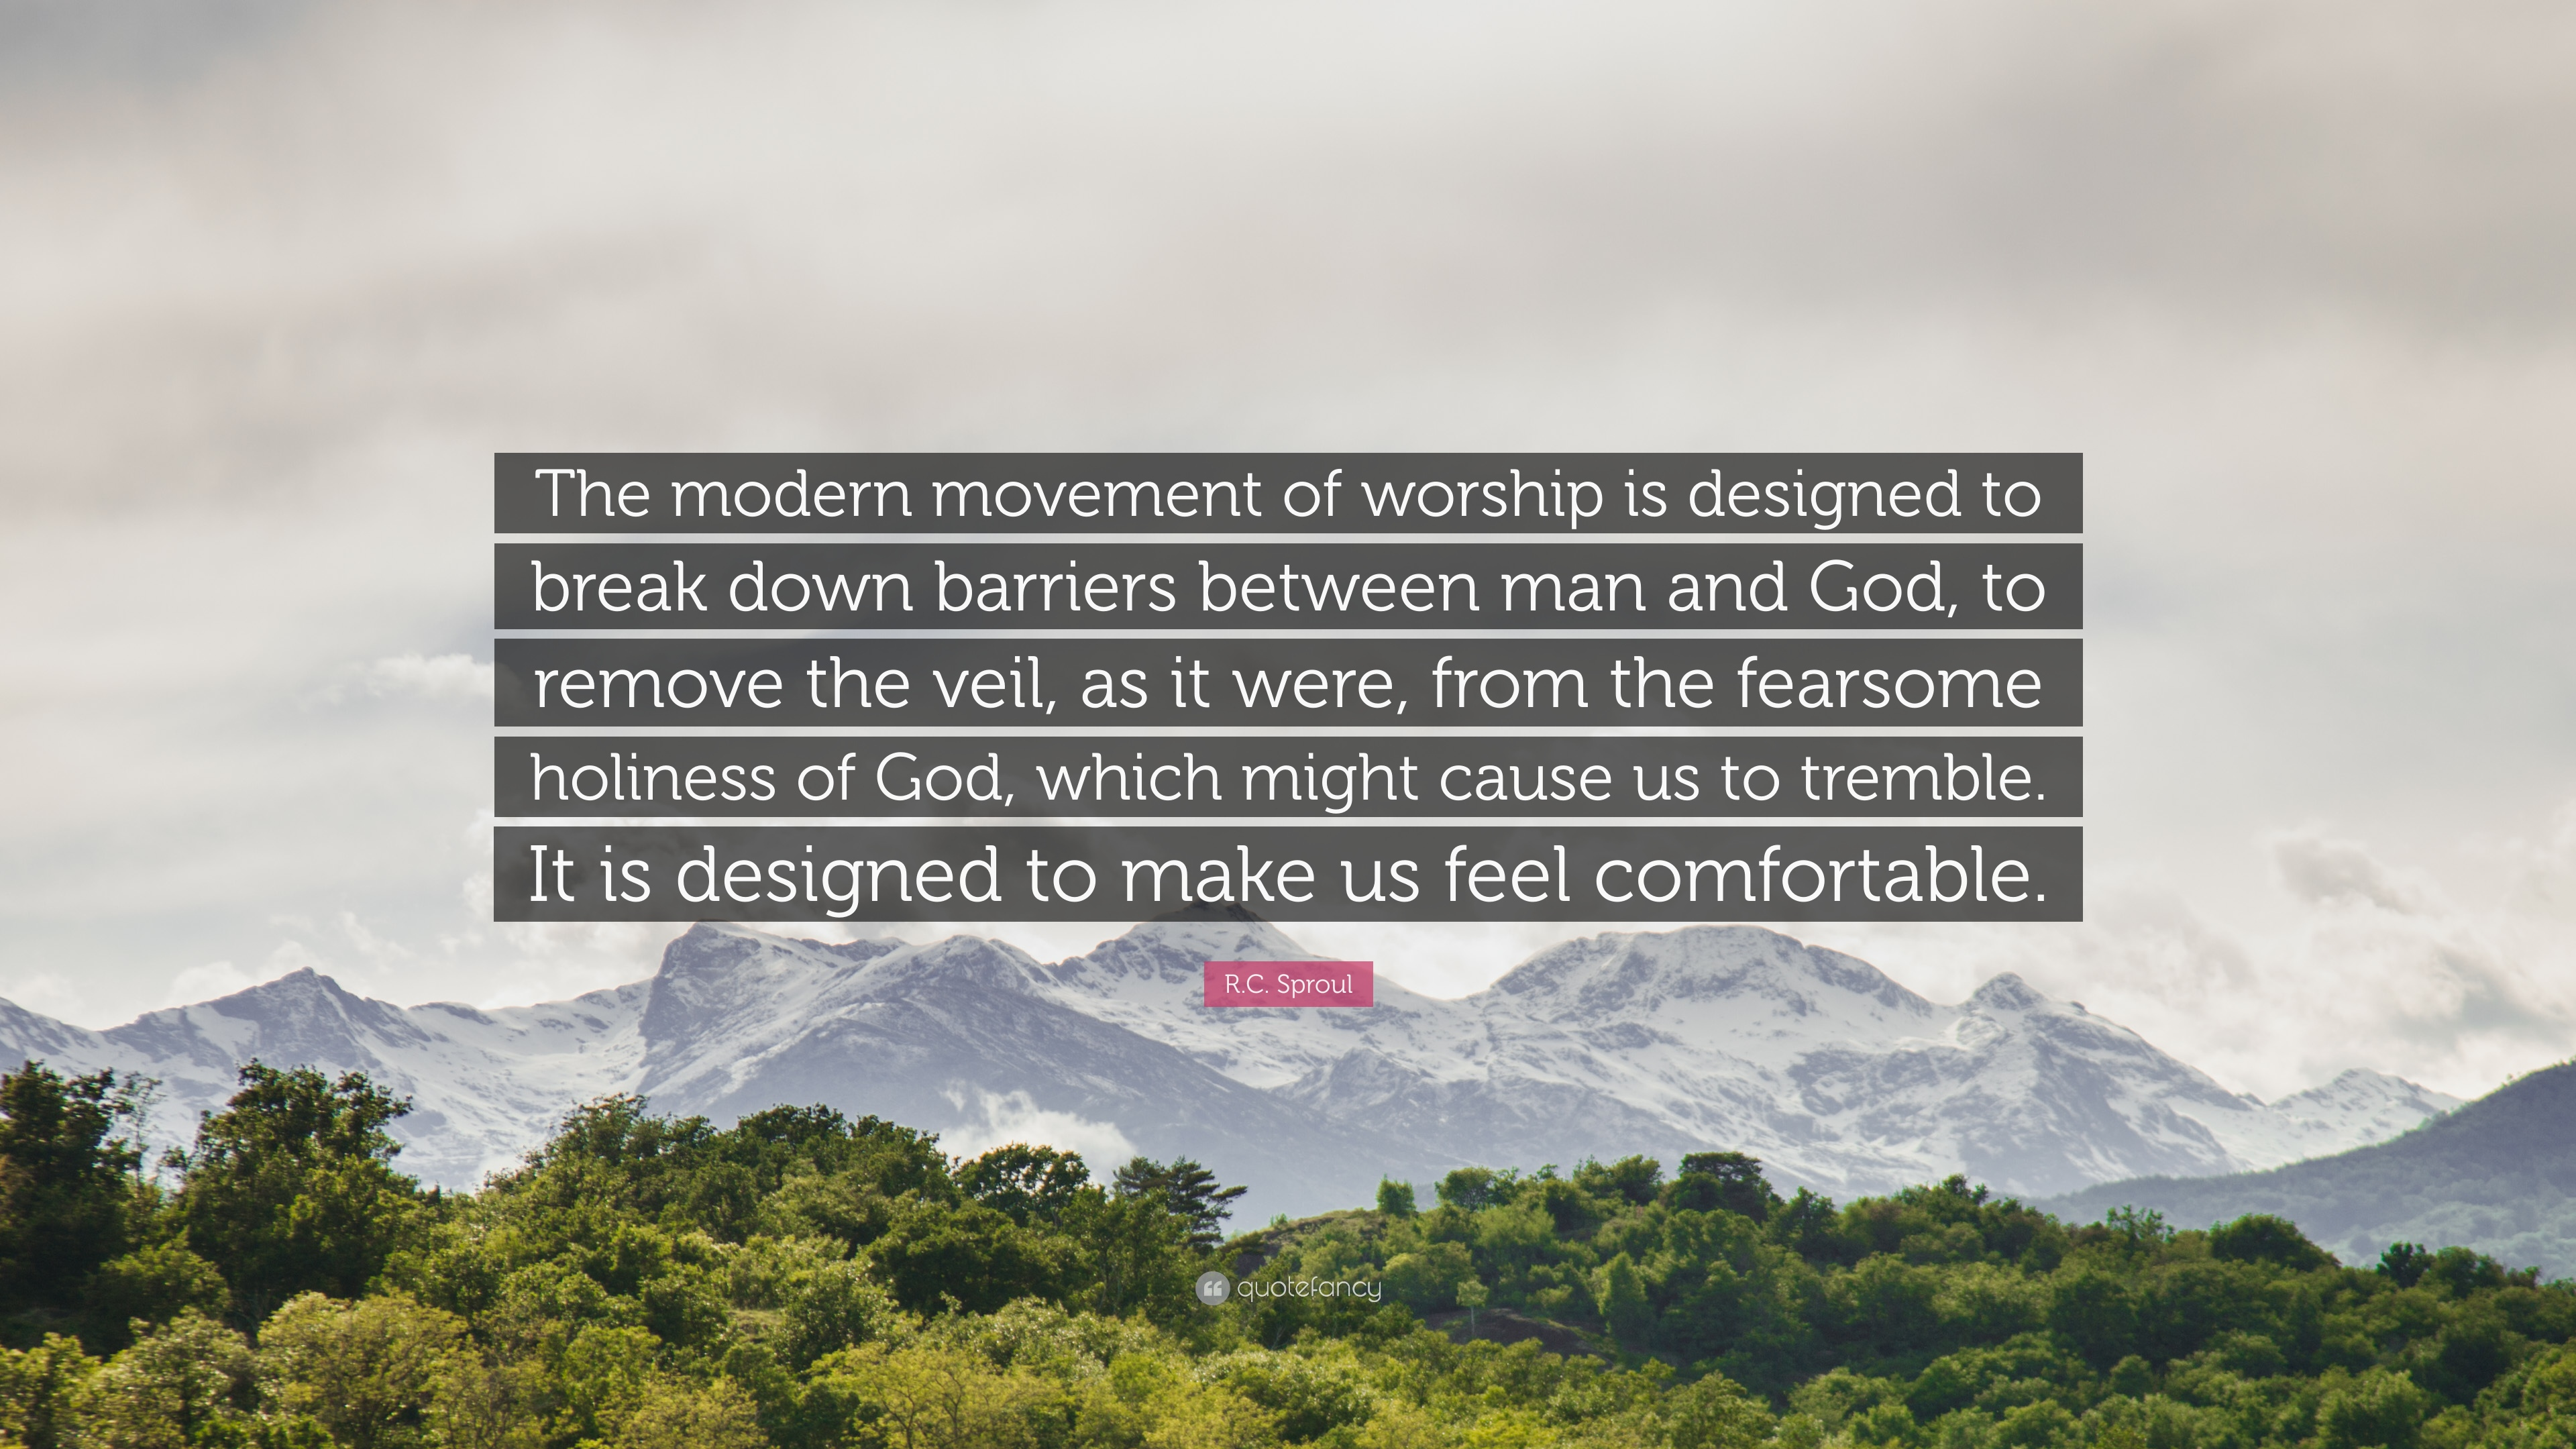 R C Sproul Quote The Modern Movement Of Worship Is Designed To Break Down Barriers Between Man And God To Remove The Veil As It Were F 7 Wallpapers Quotefancy